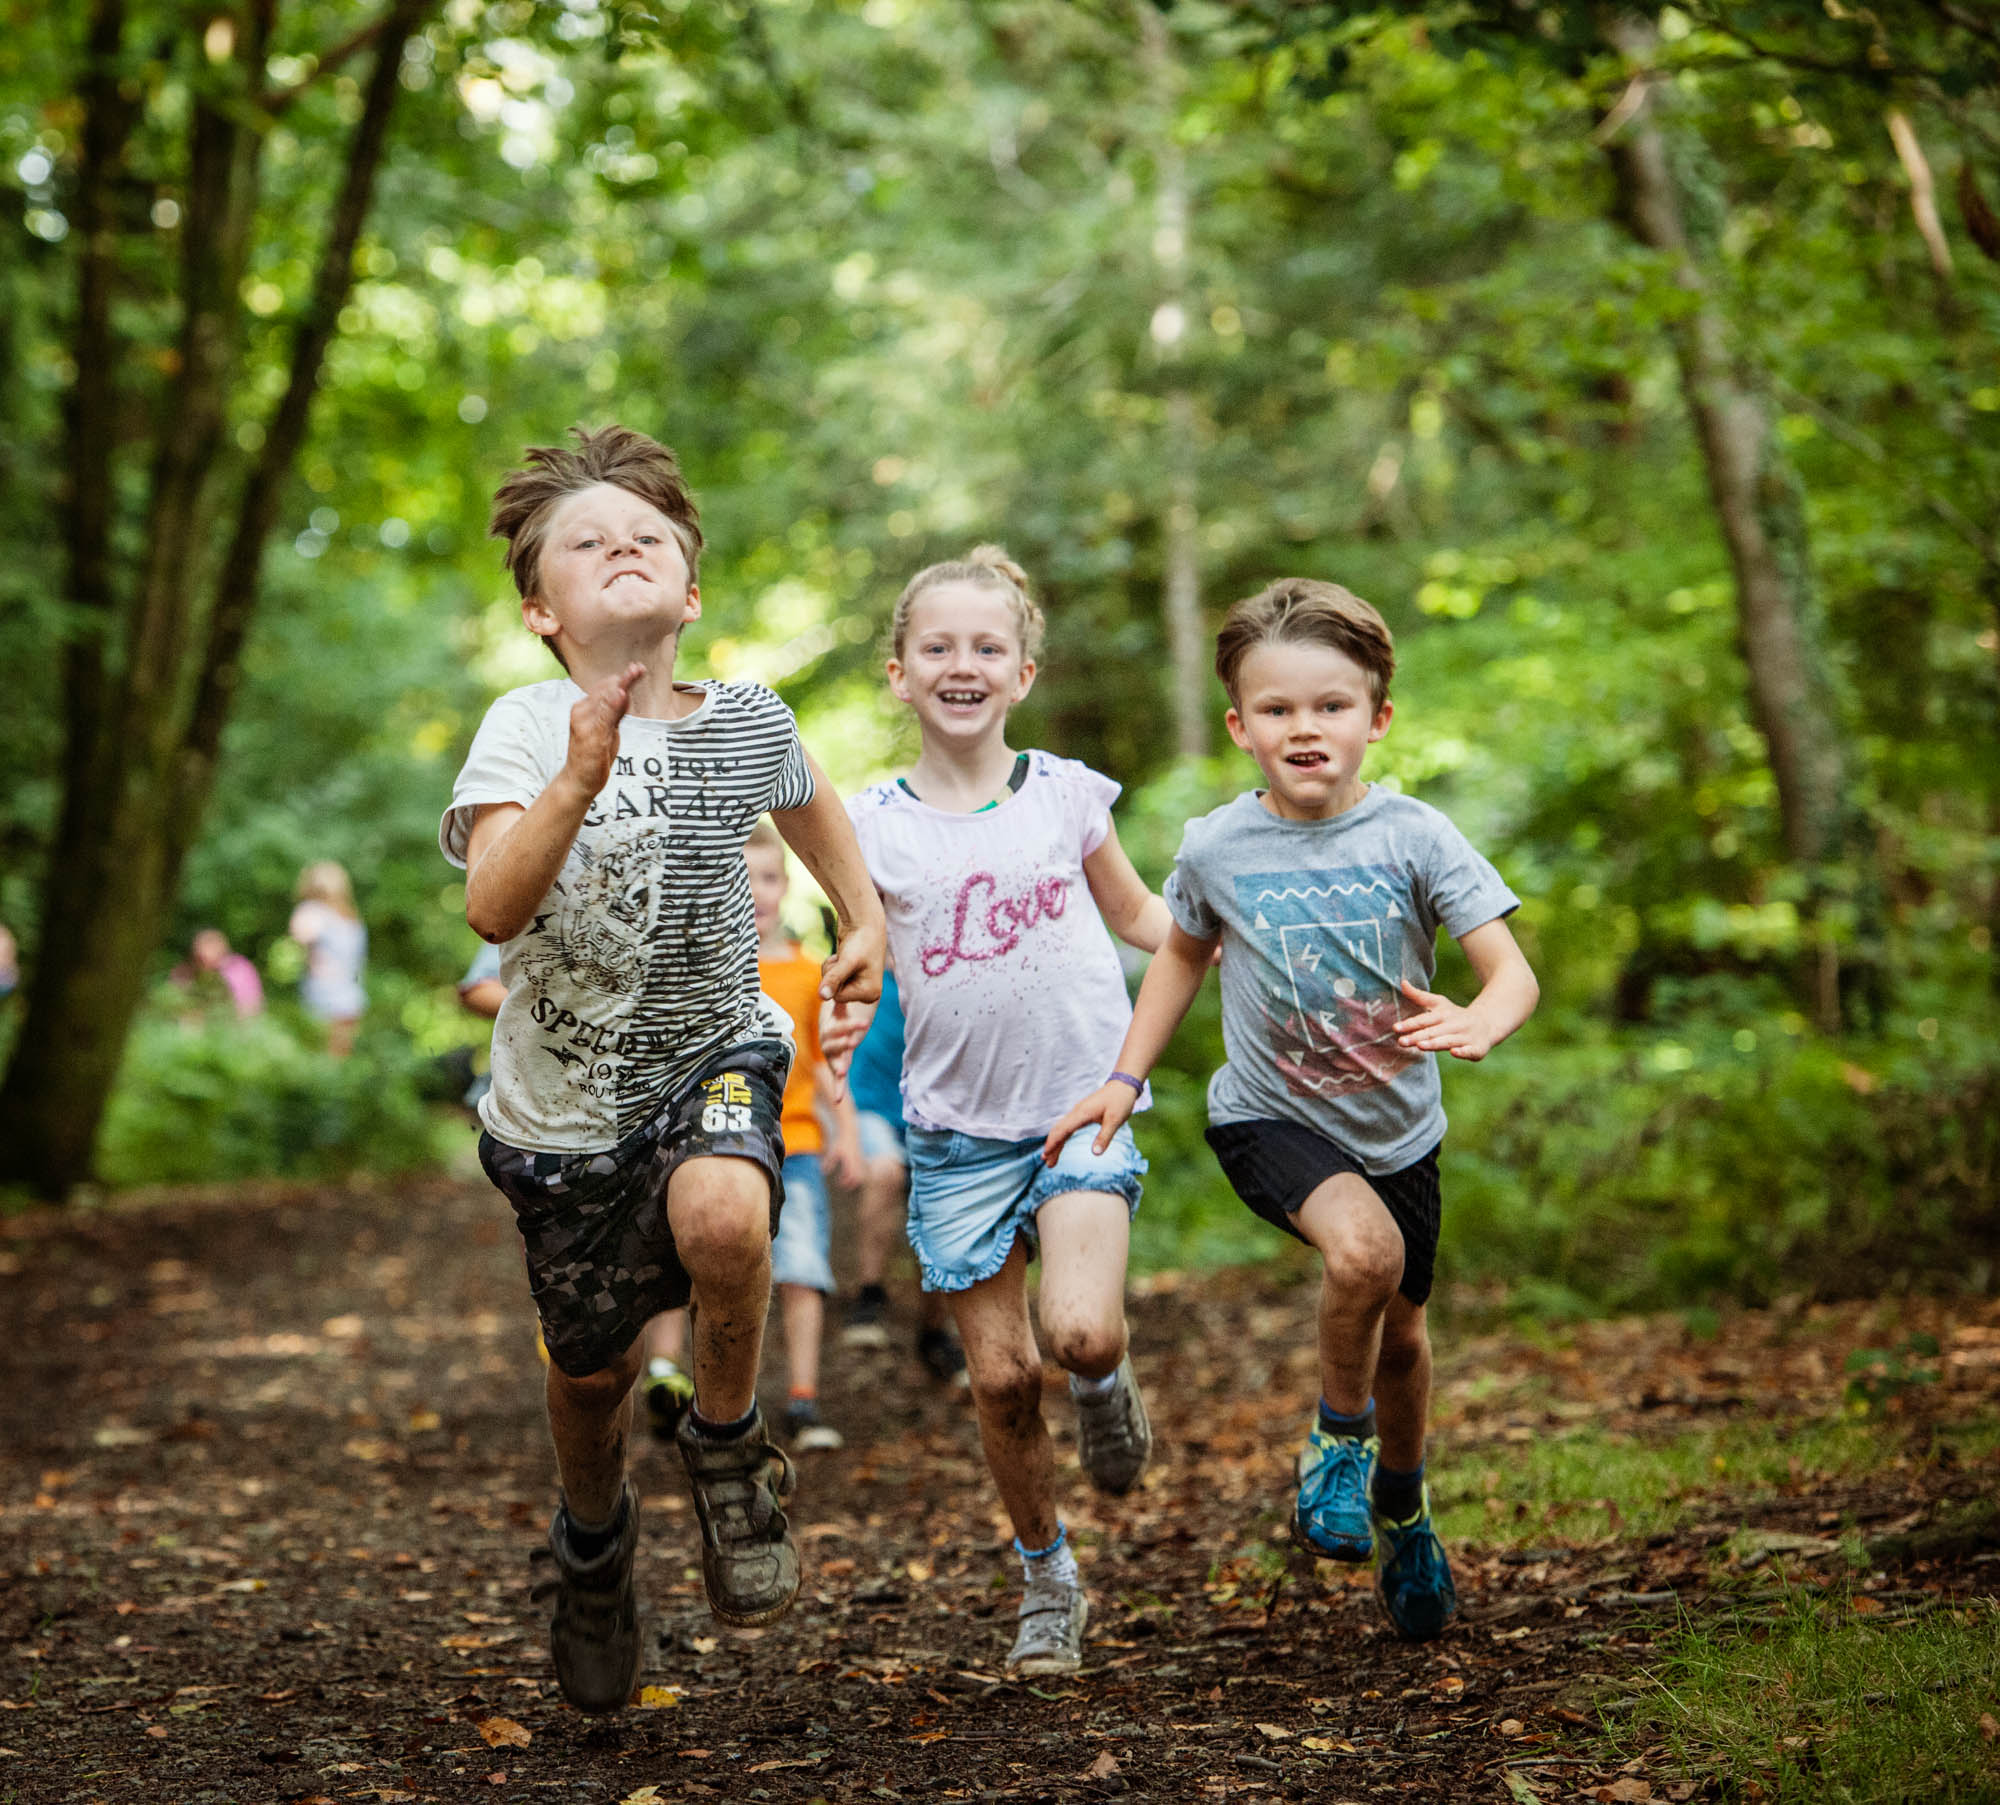 Why children need to get outdoors and play  even in the